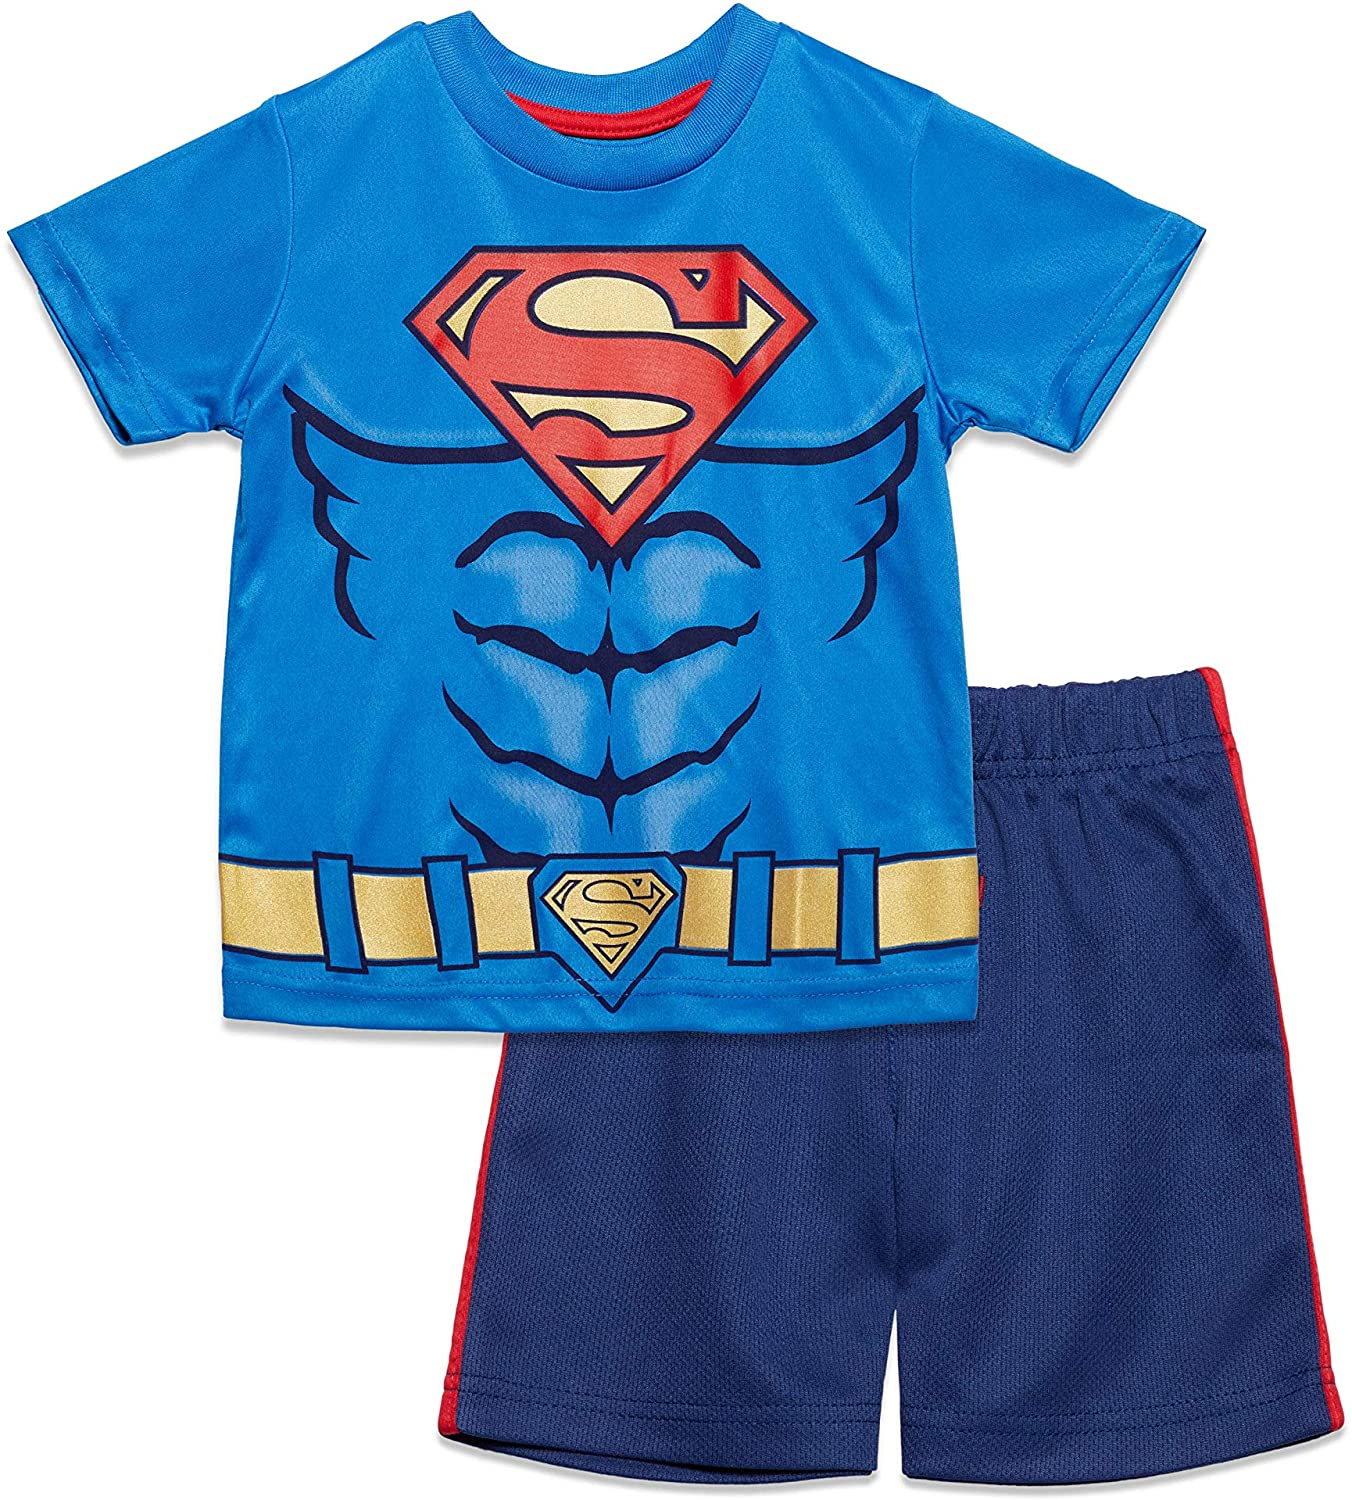 Warner Bros. Superman Toddler Athletic T-Shirt and Shorts Set 4T